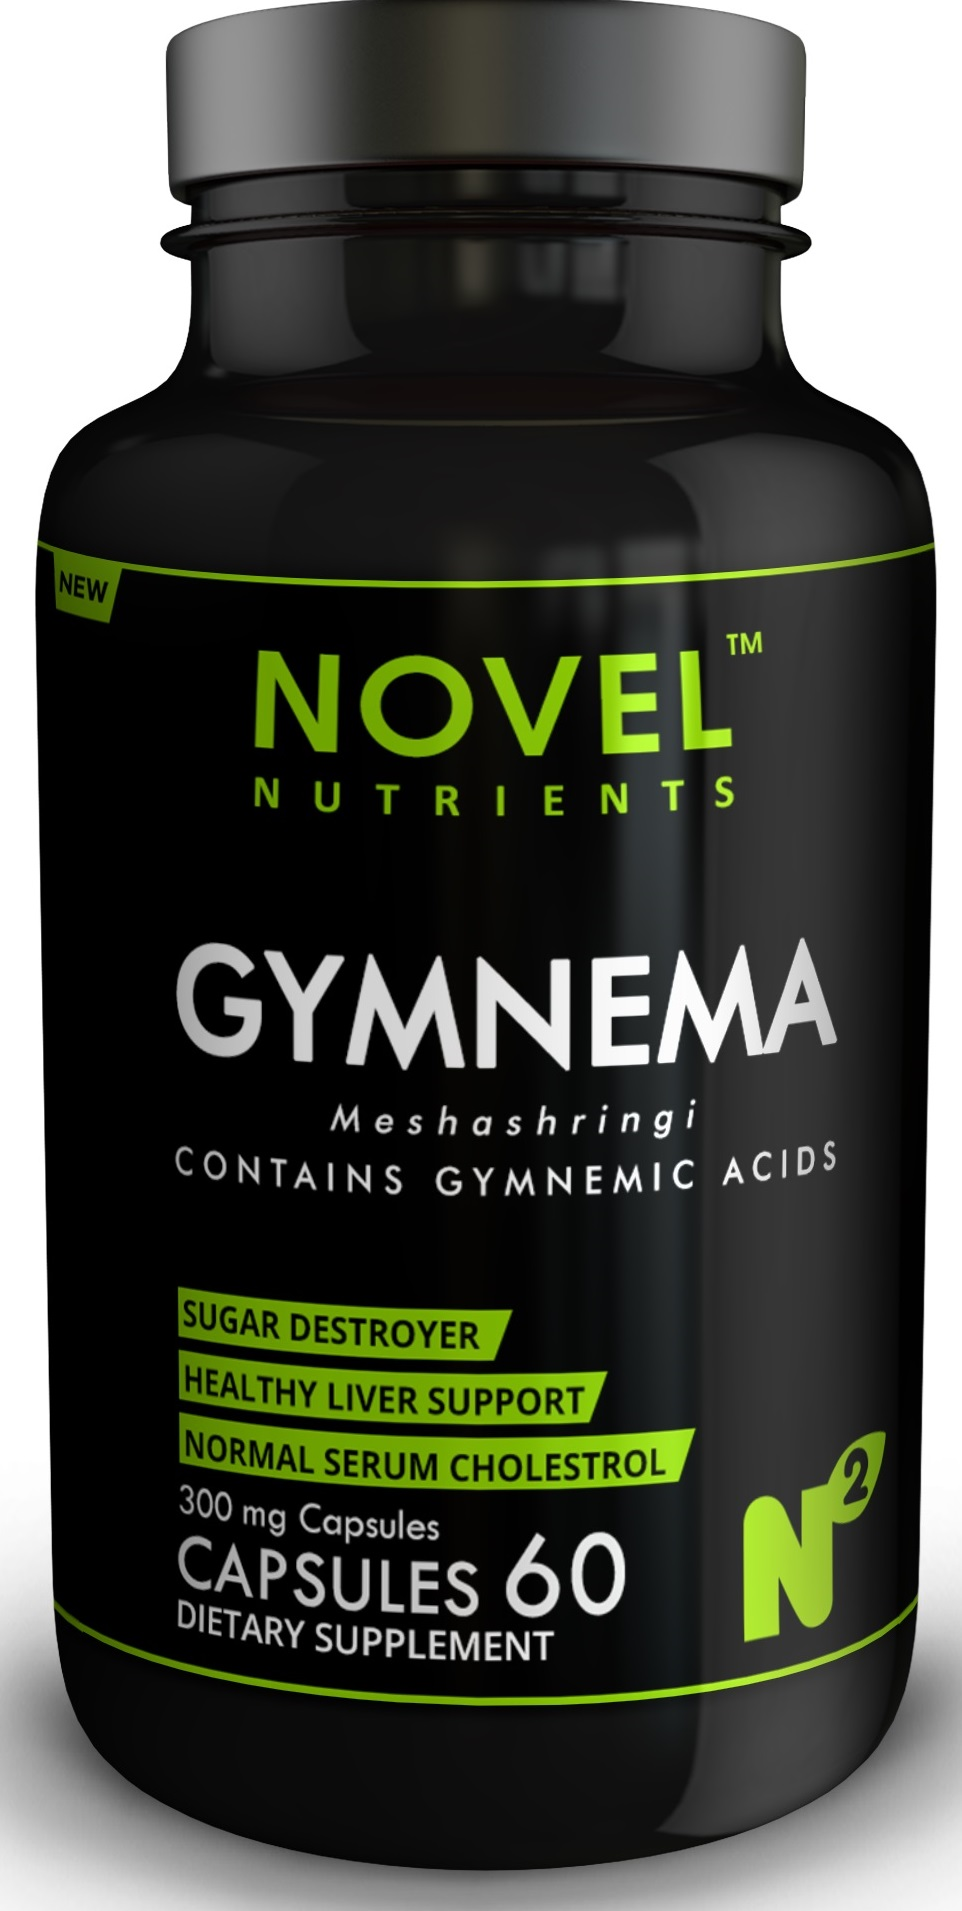 Gymnema (Meshashringi) - Diabetic support 300 mg 60 Capsules